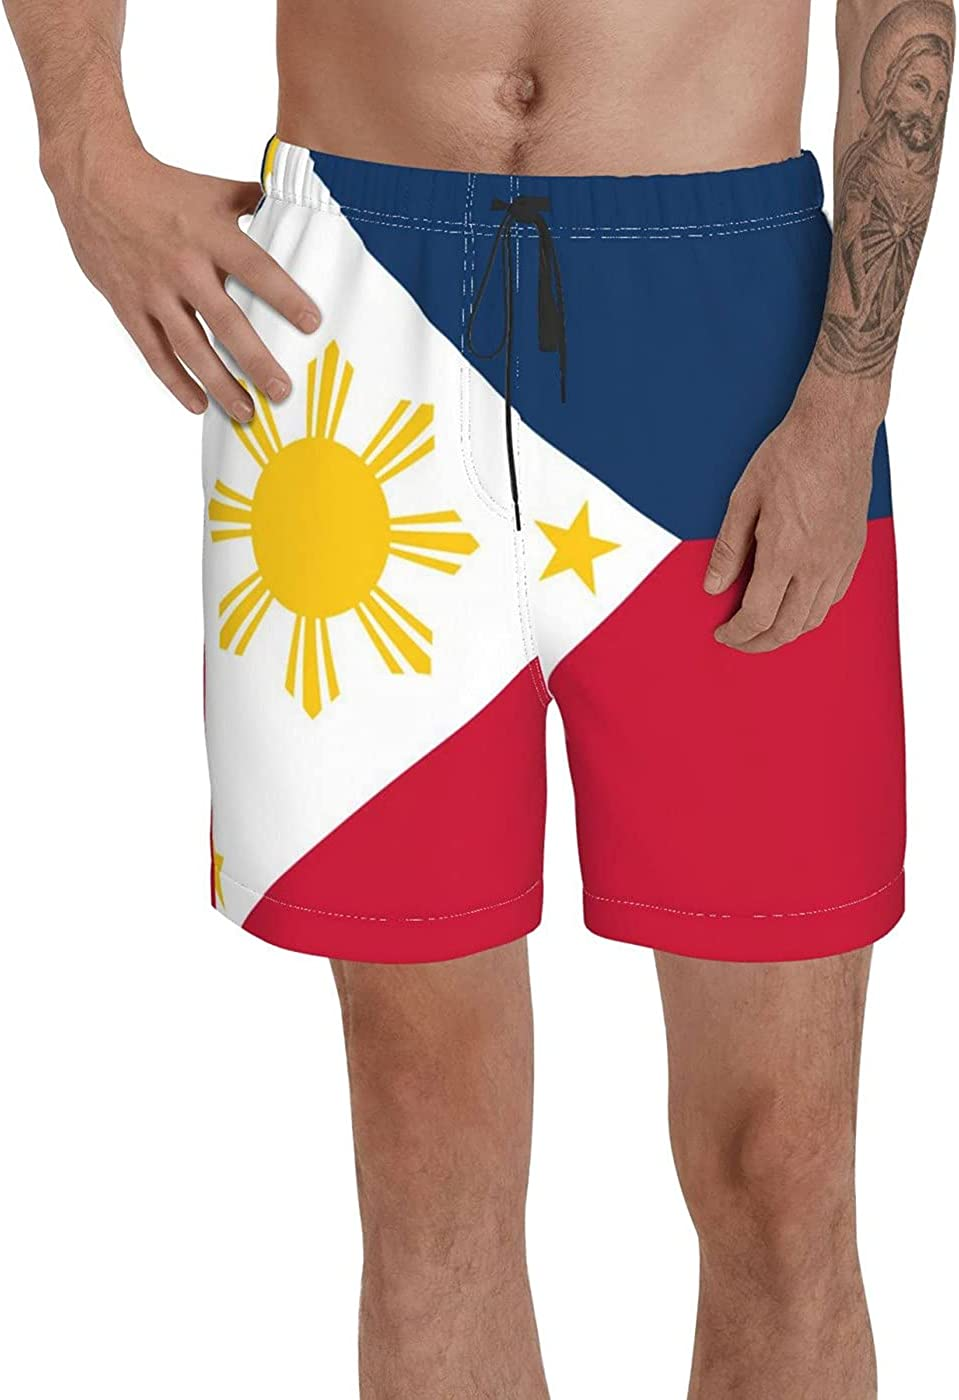 Count Philippine Outdoor Flags Men's 3D Printed Funny Summer Quick Dry Swim Short Board Shorts with